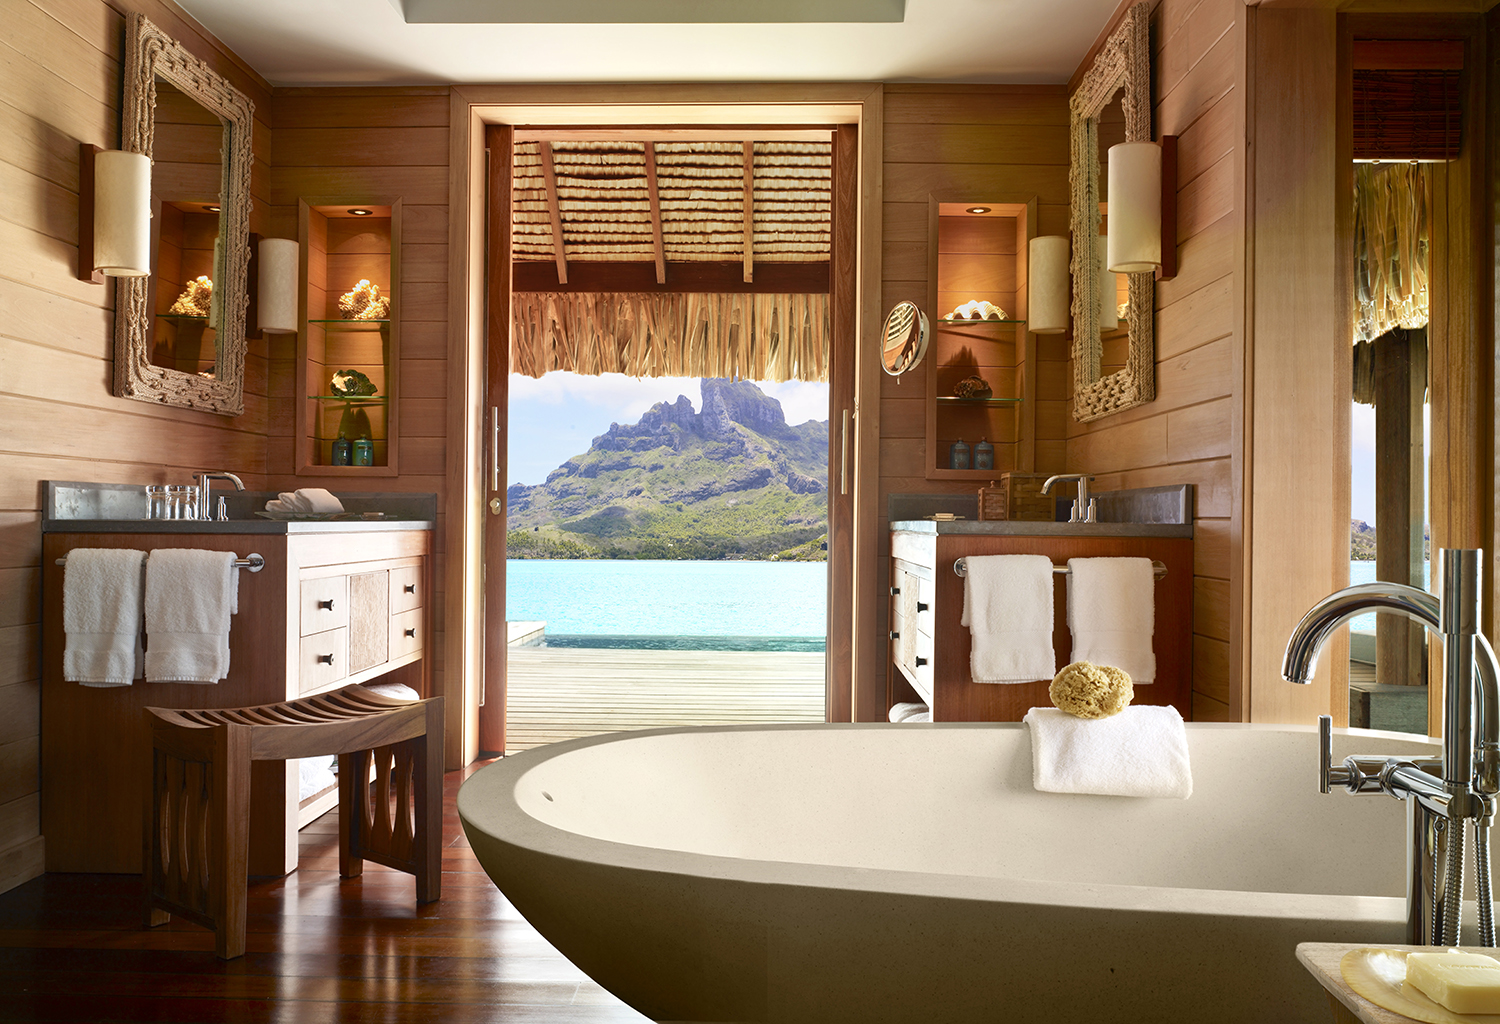 tub with a view.jpg